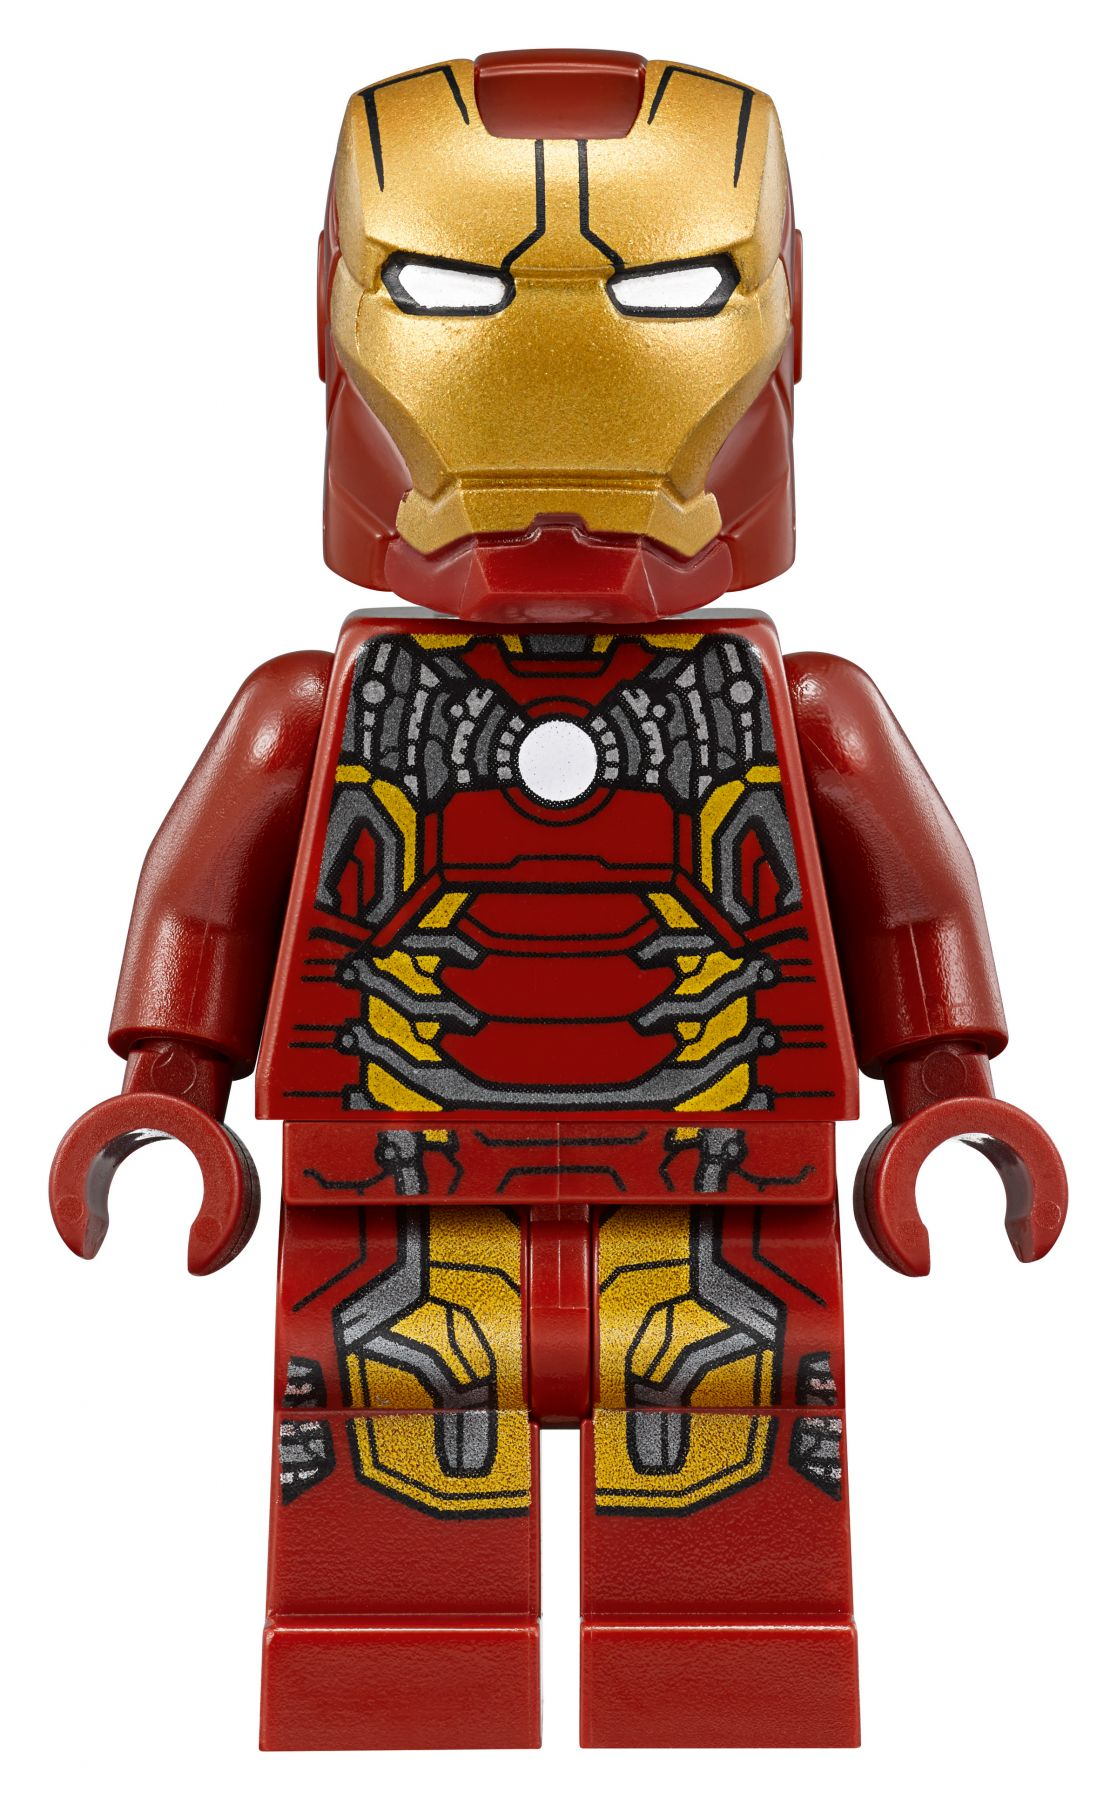 LEGO Super Heroes 76105 Marvel Avengers: Infinity War - The Hulkbuster: Ultron Edition LEGO_76105_alt4.jpg